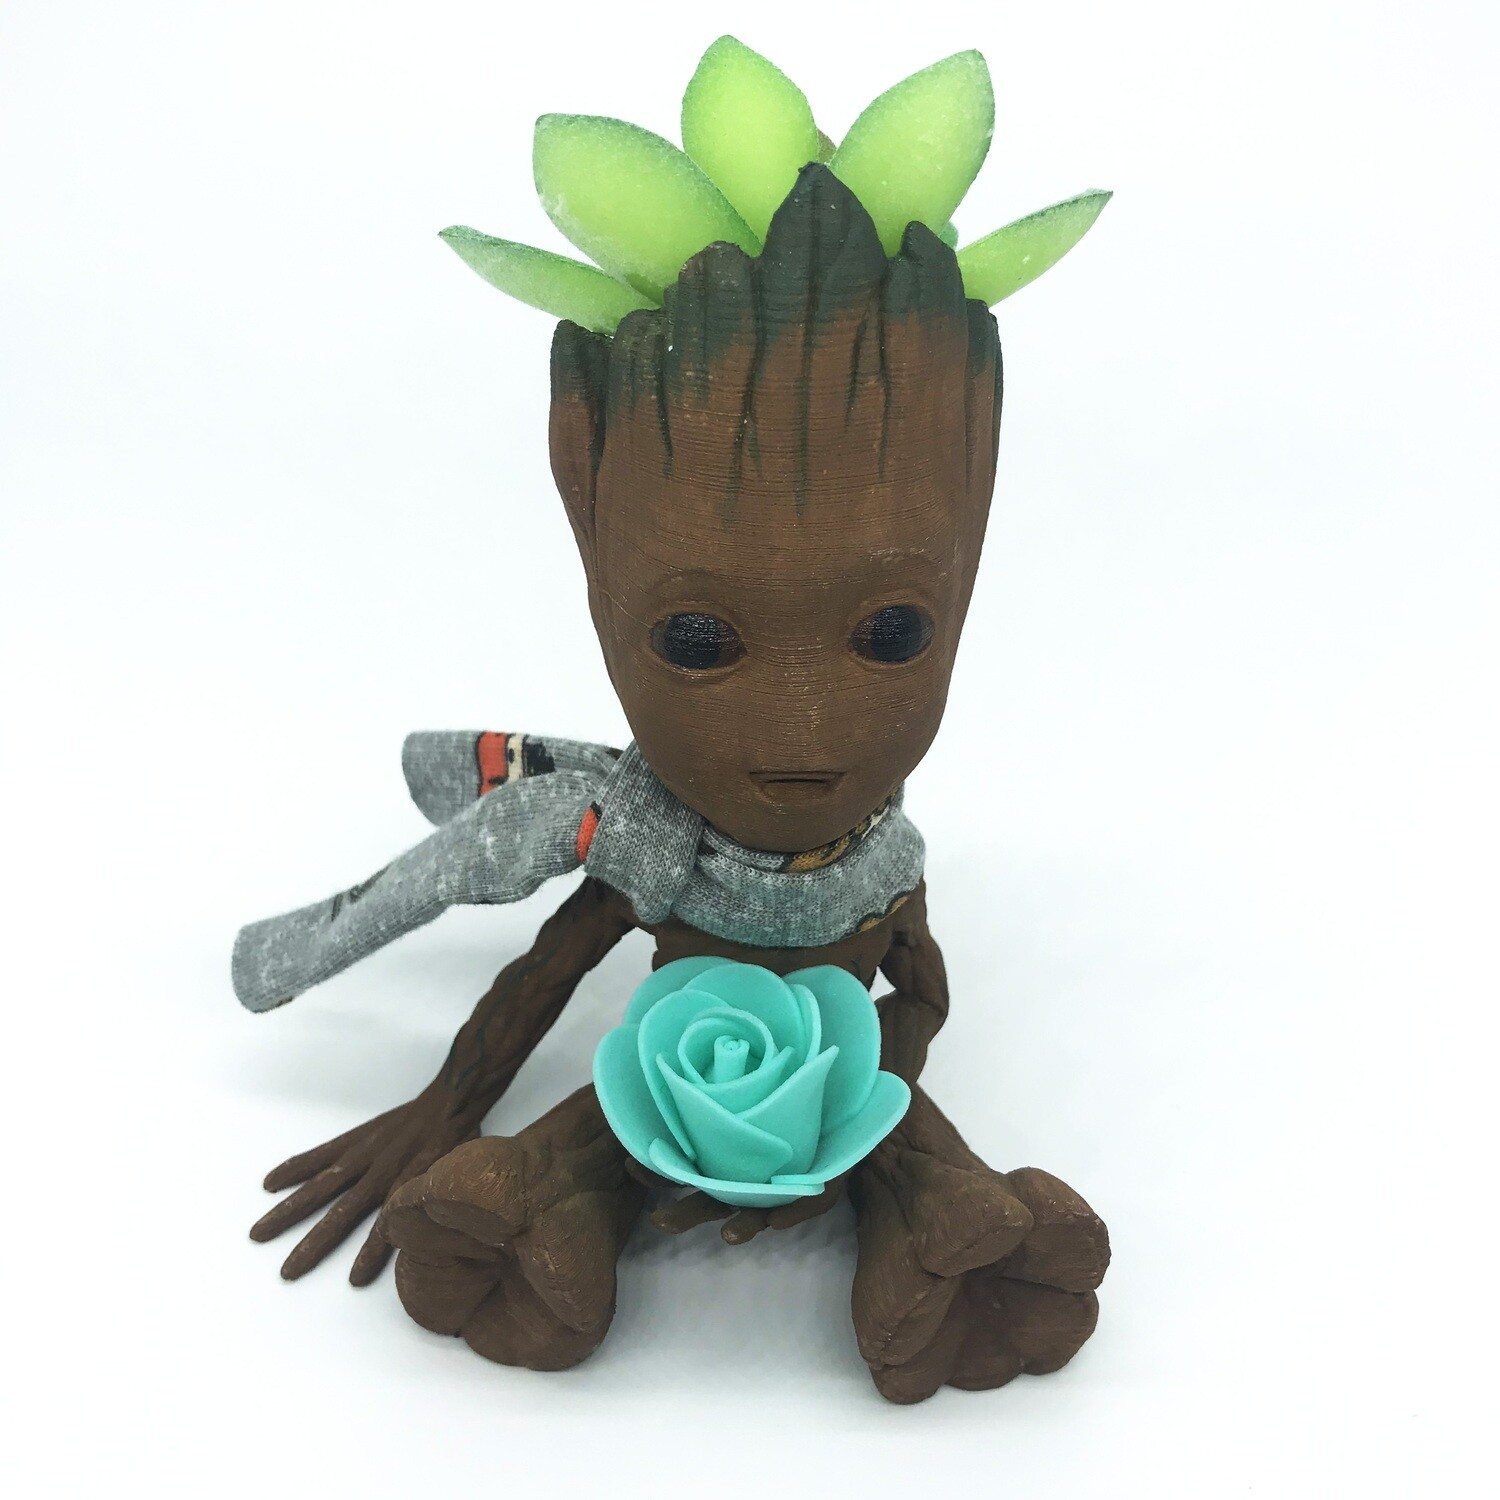 Cute & Happy Tree planter holding teal flower with scarf & fake succulent